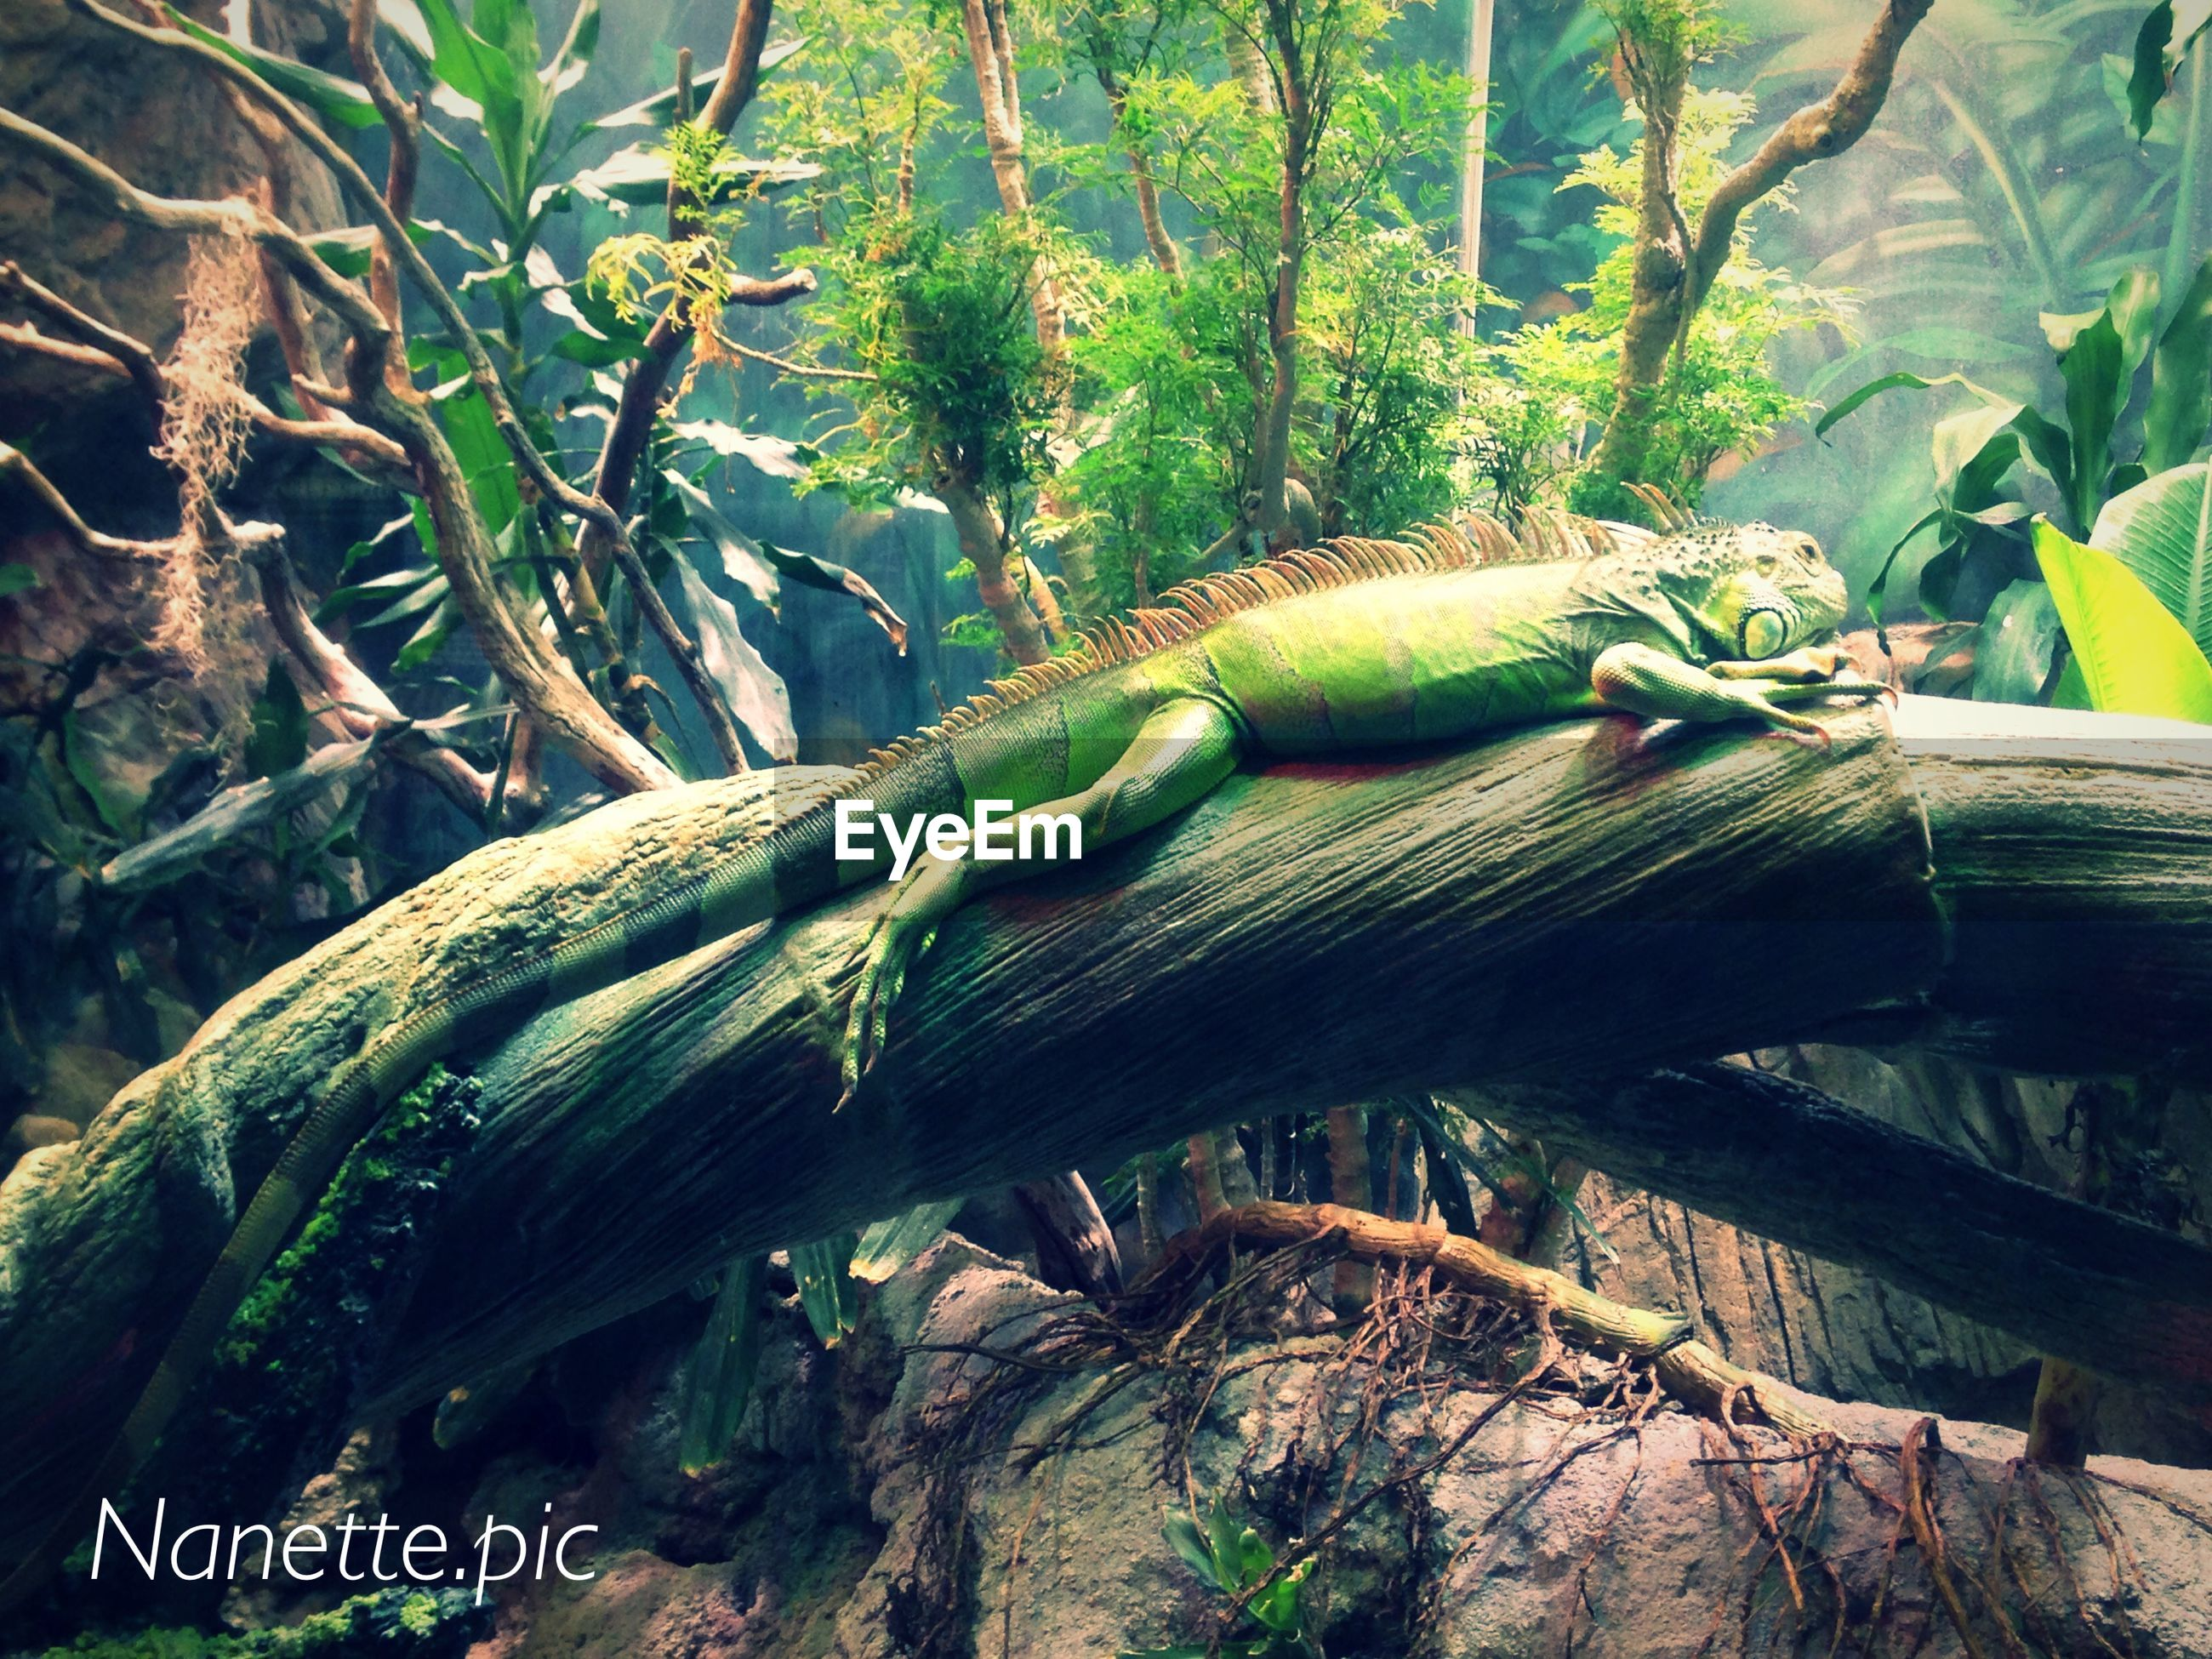 tree, green color, nature, water, forest, branch, growth, tree trunk, tranquility, day, plant, outdoors, beauty in nature, log, reptile, no people, high angle view, animals in the wild, tranquil scene, wood - material